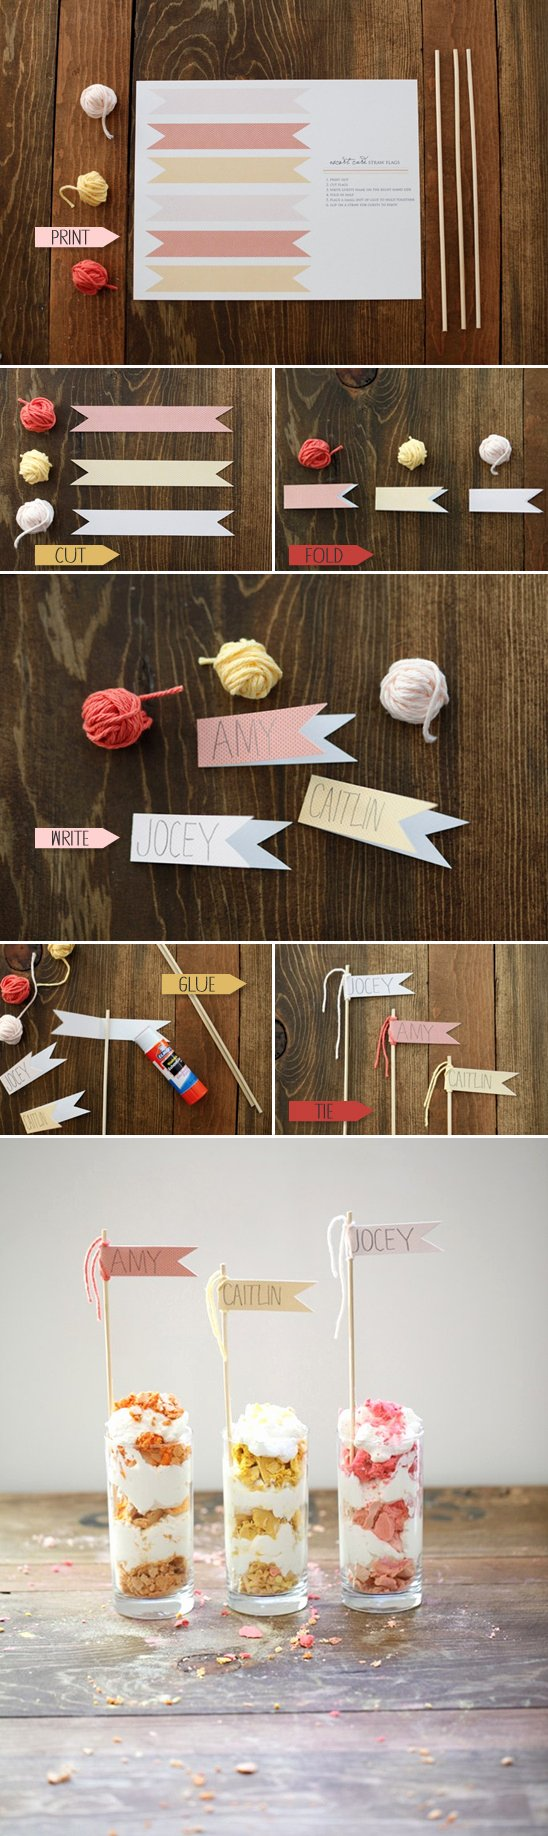 Free Printable Place Cards Beautiful Blog Free Printables